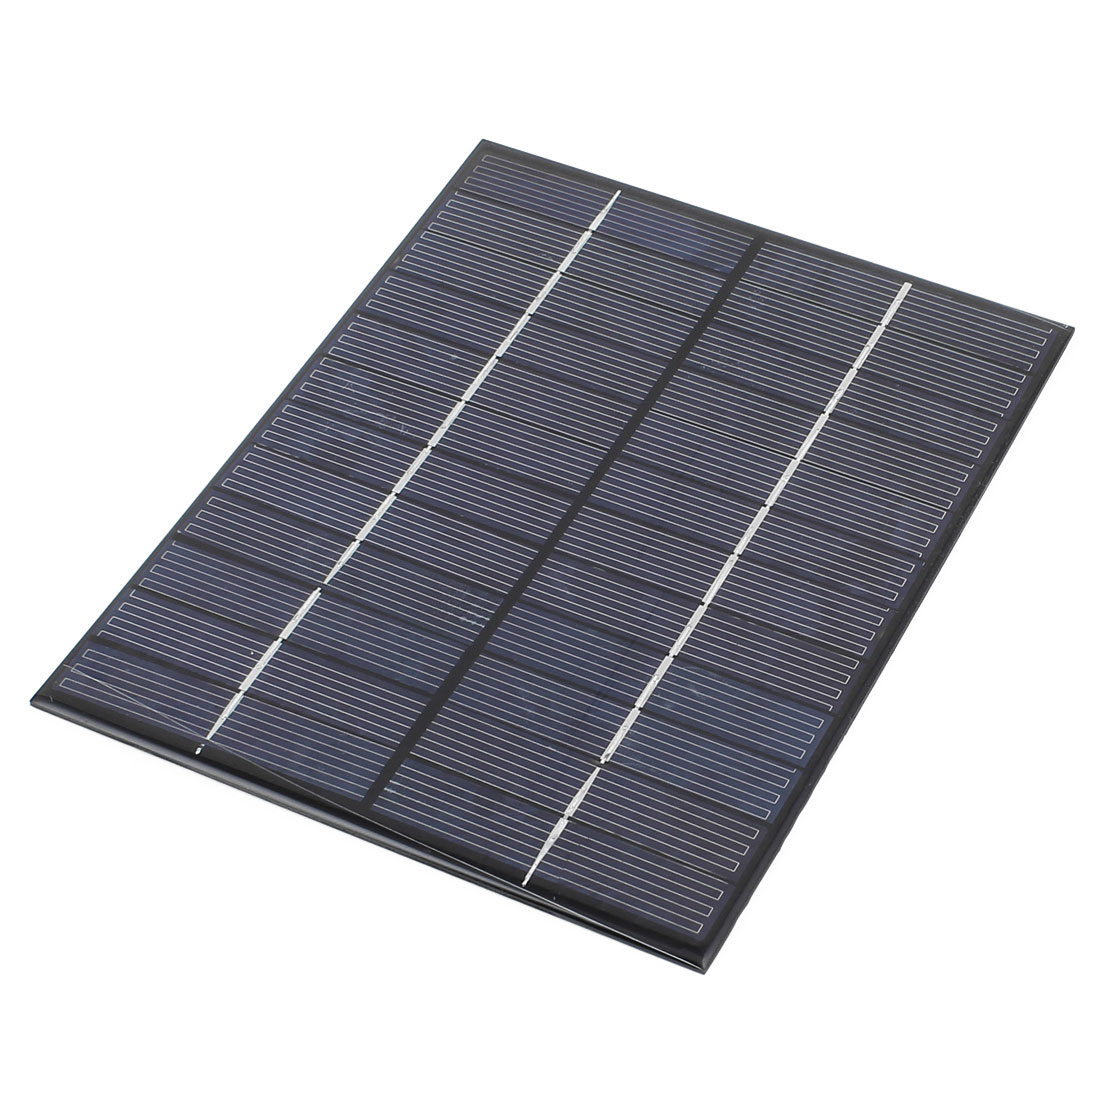 12V 5.2W DIY Polycrystallinesilicon Solar Panel Power Cell Battery Charger 210mm x 165mm